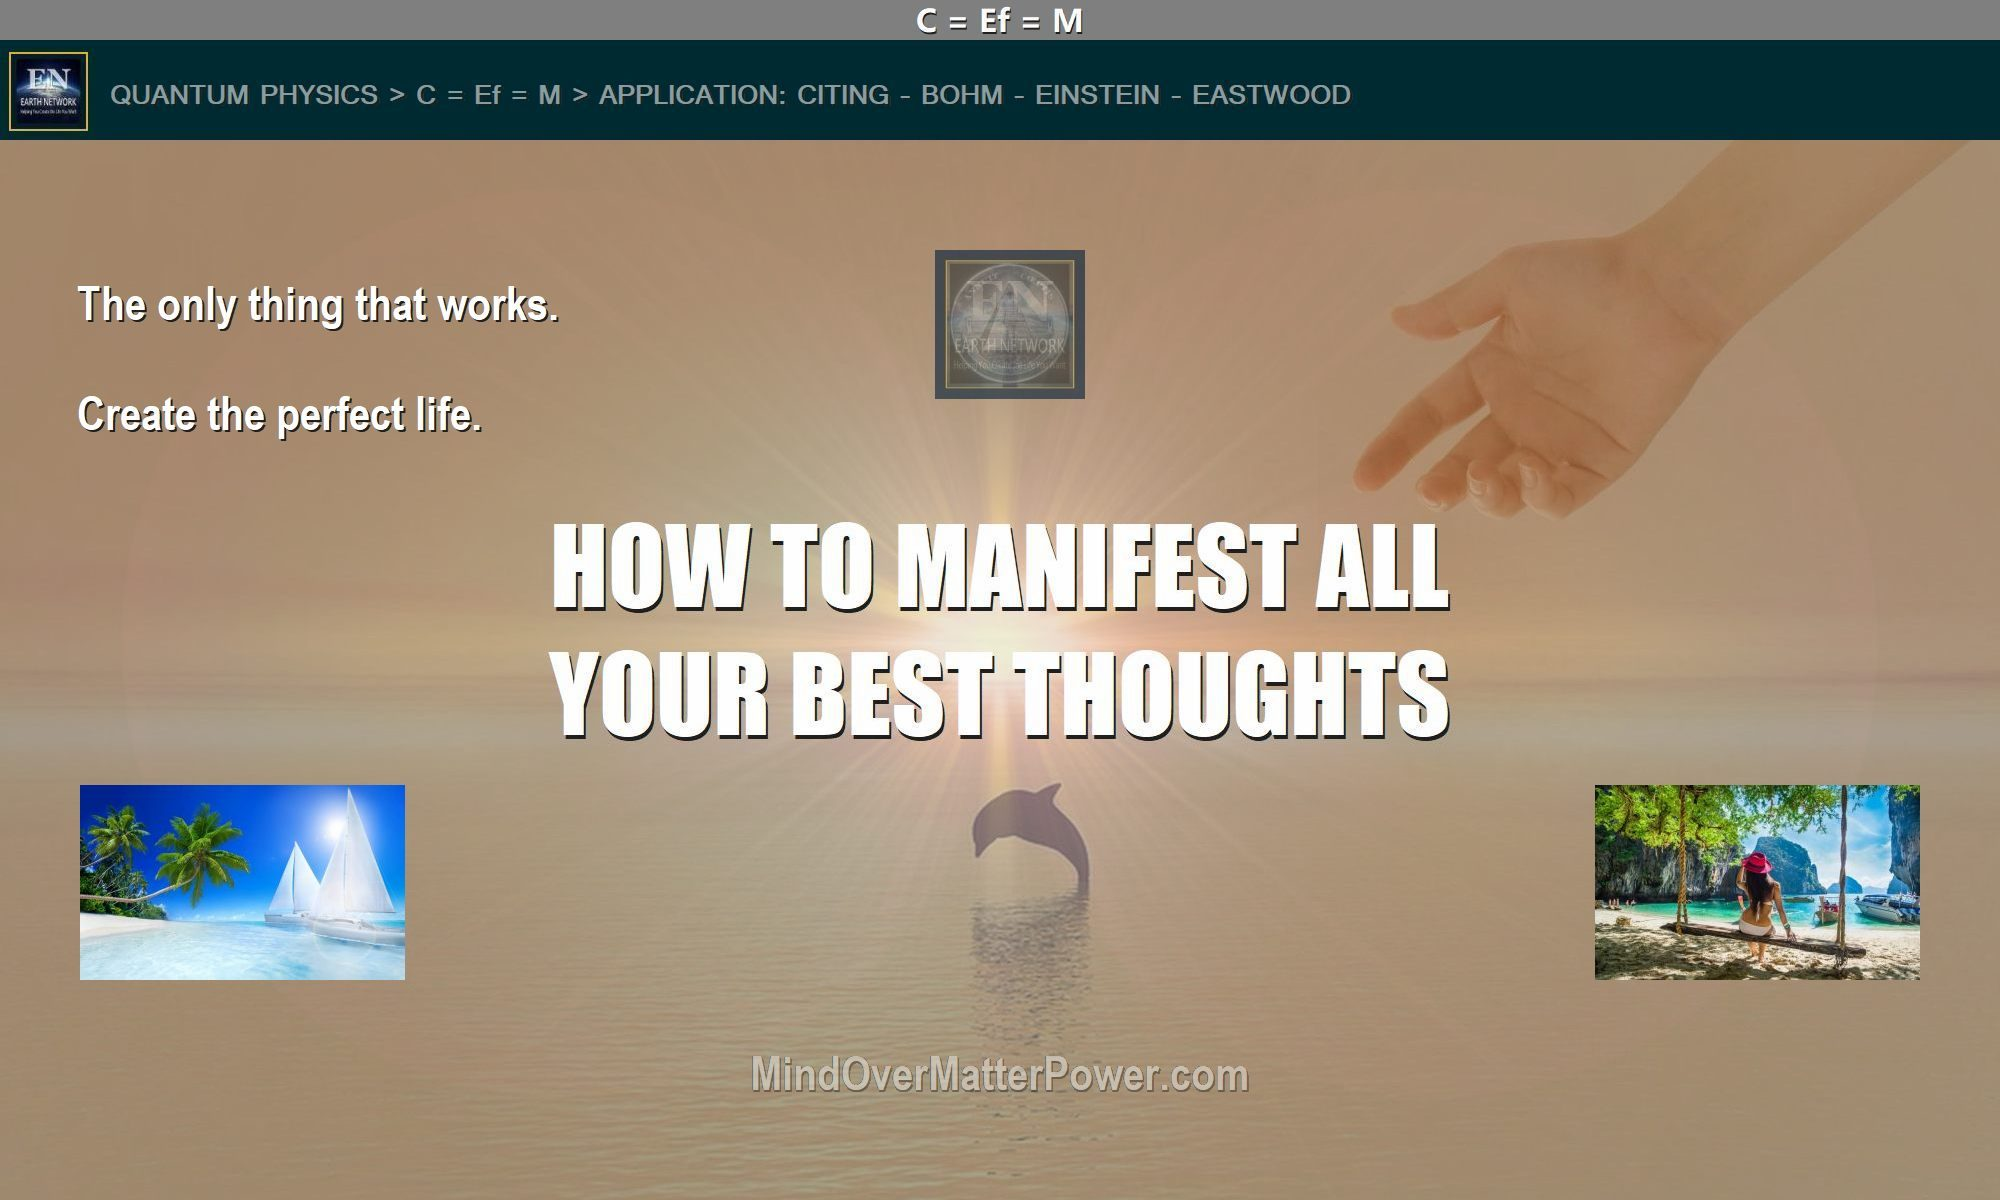 how-to-materialize-positive-events-thinking-can-do-thoughts-emotions-manifest-physically-depicted-by-dolphin-in-paradise